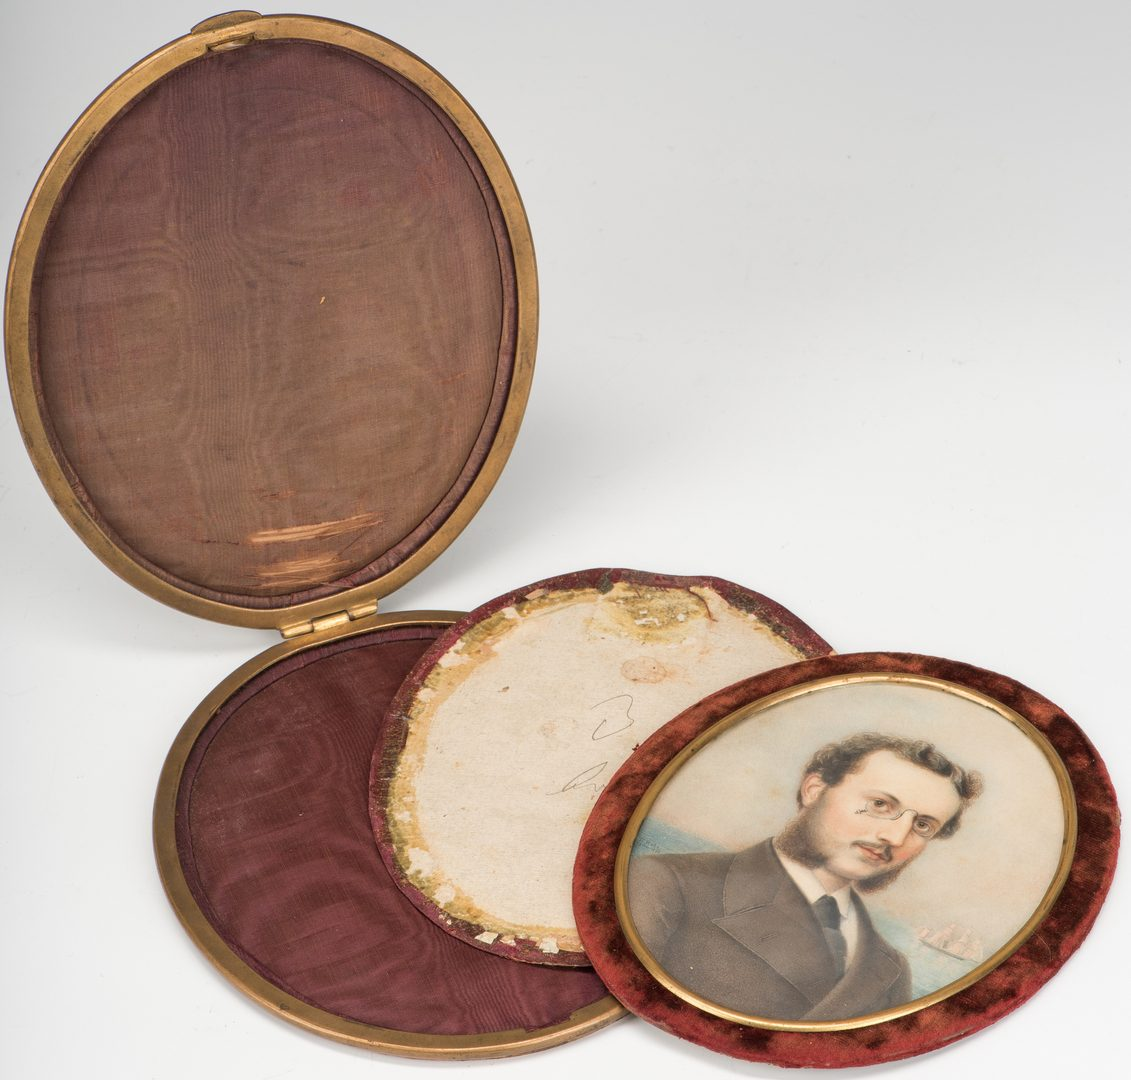 Lot 349: Attr. Theodor Rabe, Miniature portrait, possibly a ship captain